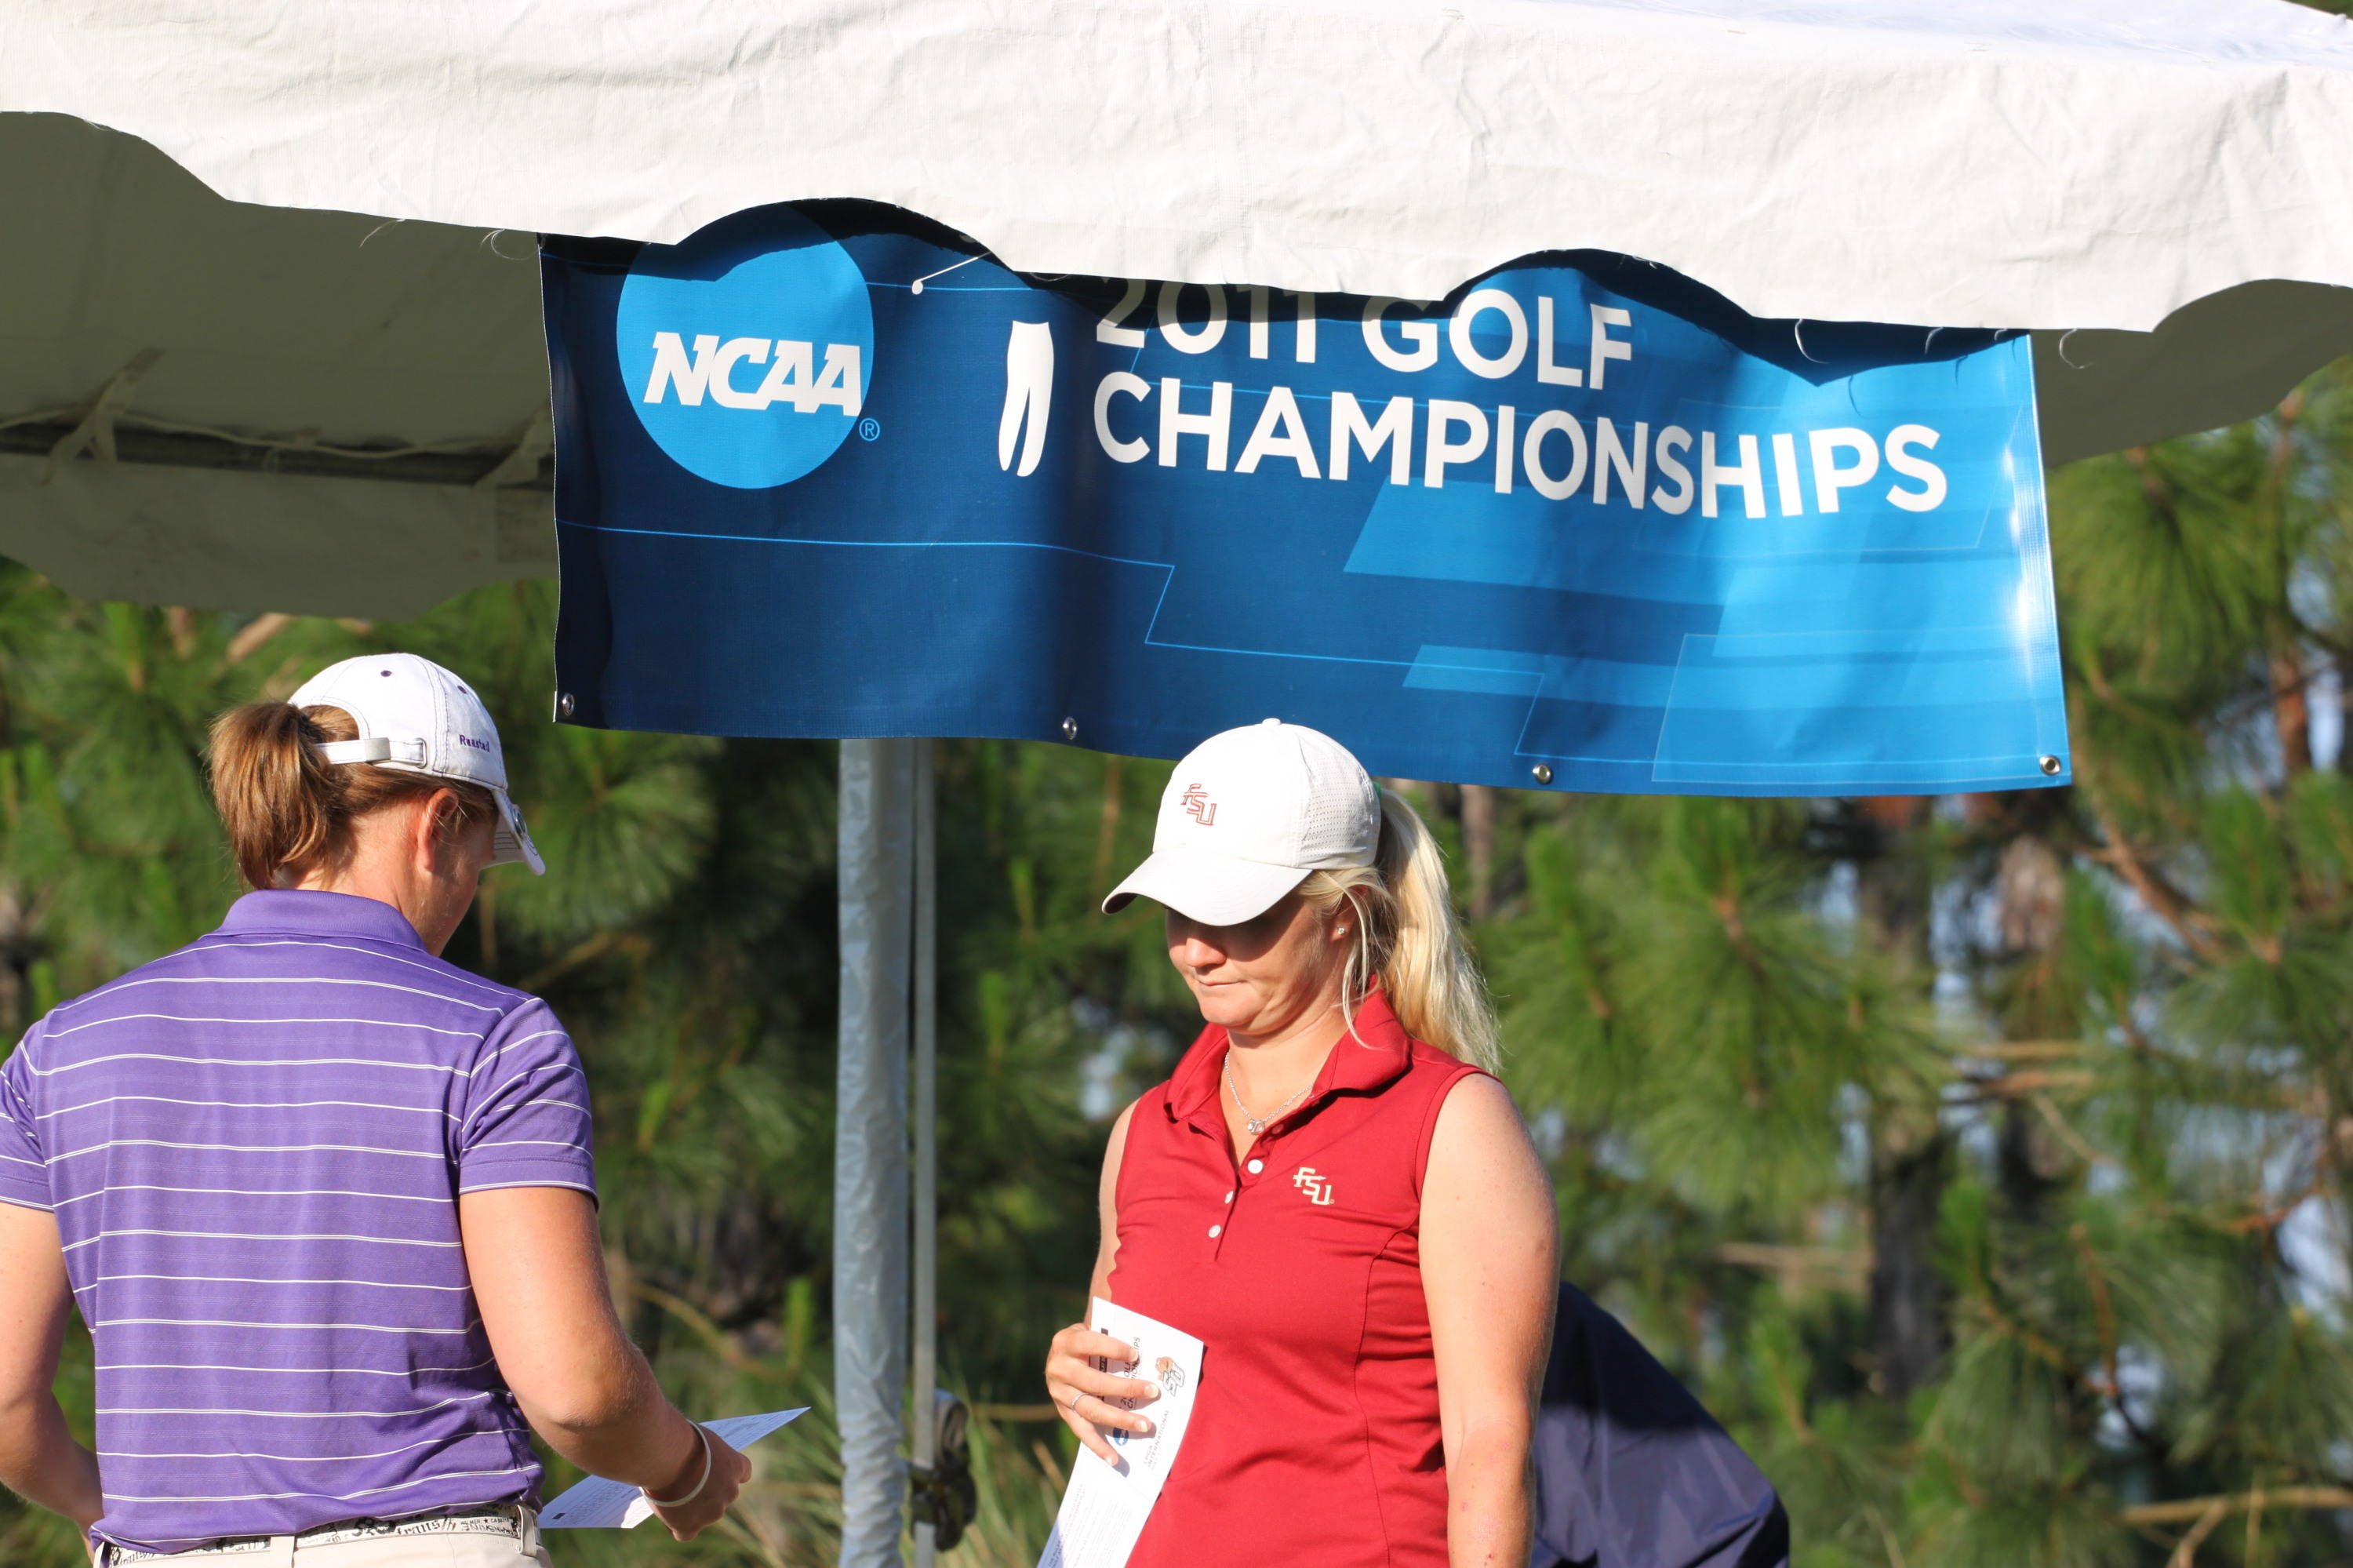 2011 NCAA Golf -- Hannah Thomson exchanges scorecards with her opponent